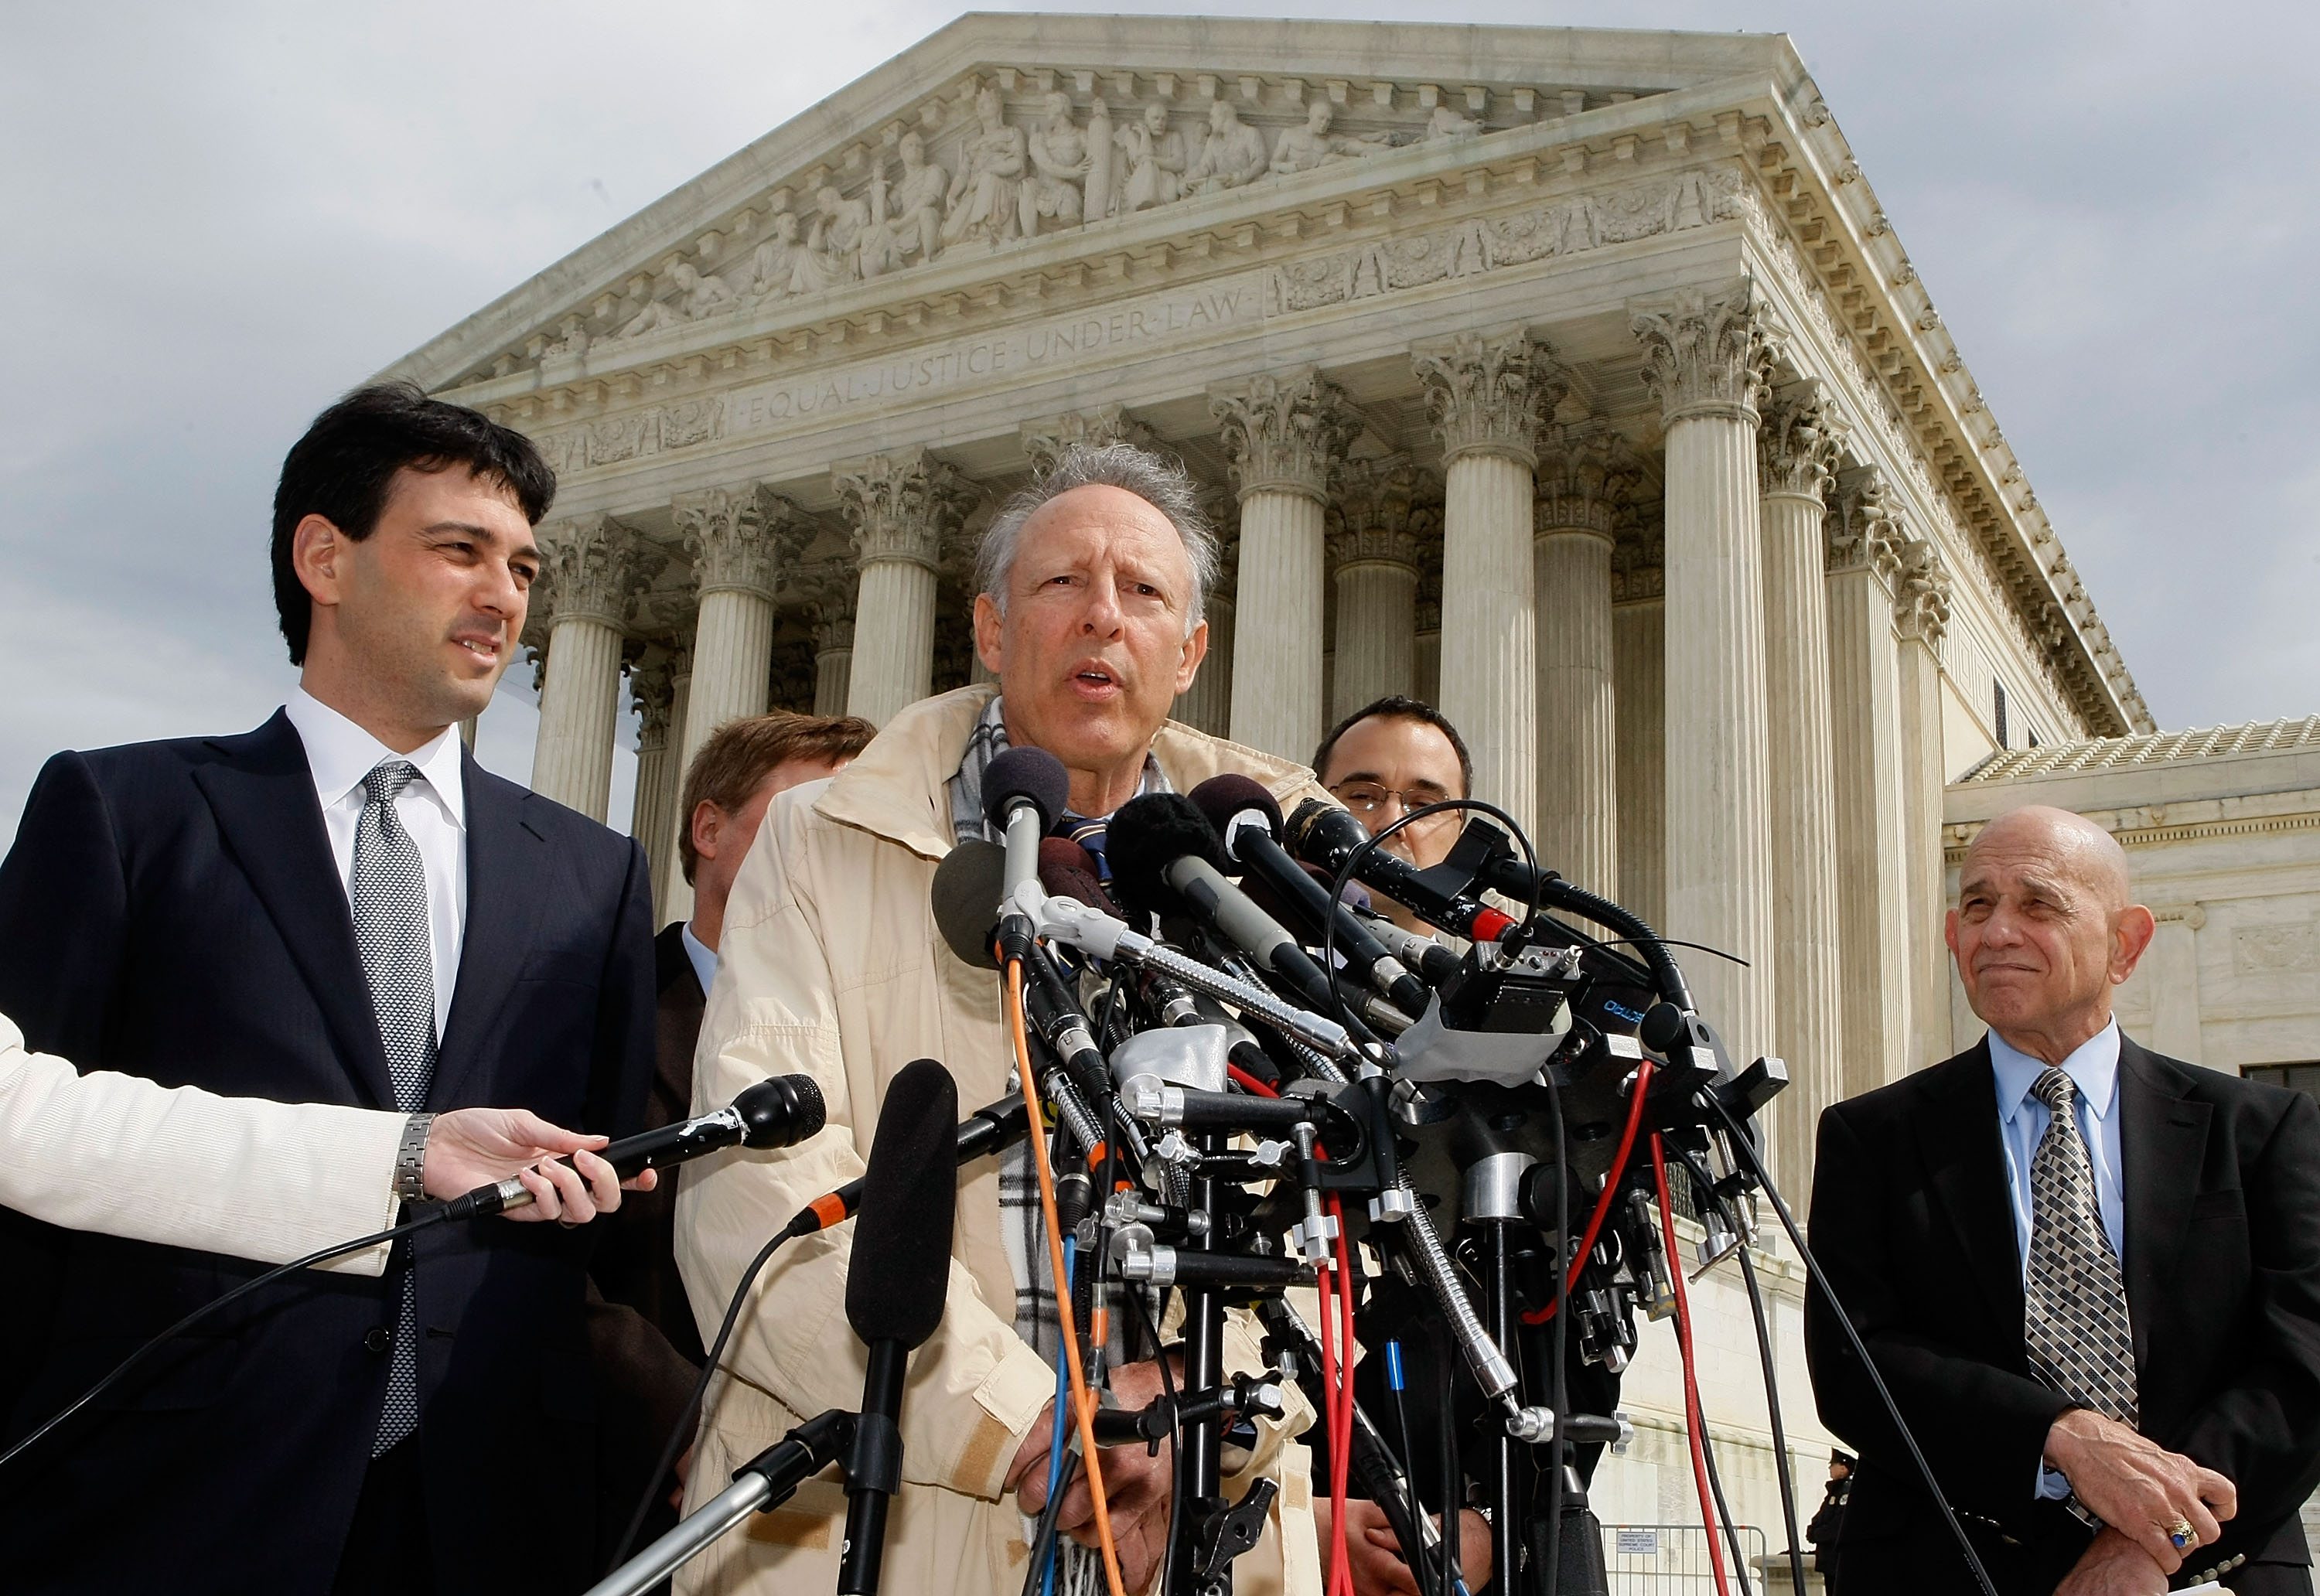 Plantiff Dick Heller speaks after oral arguments in D.C. v. Heller on March 18, 2008. (Mark Wilson/Getty Images)